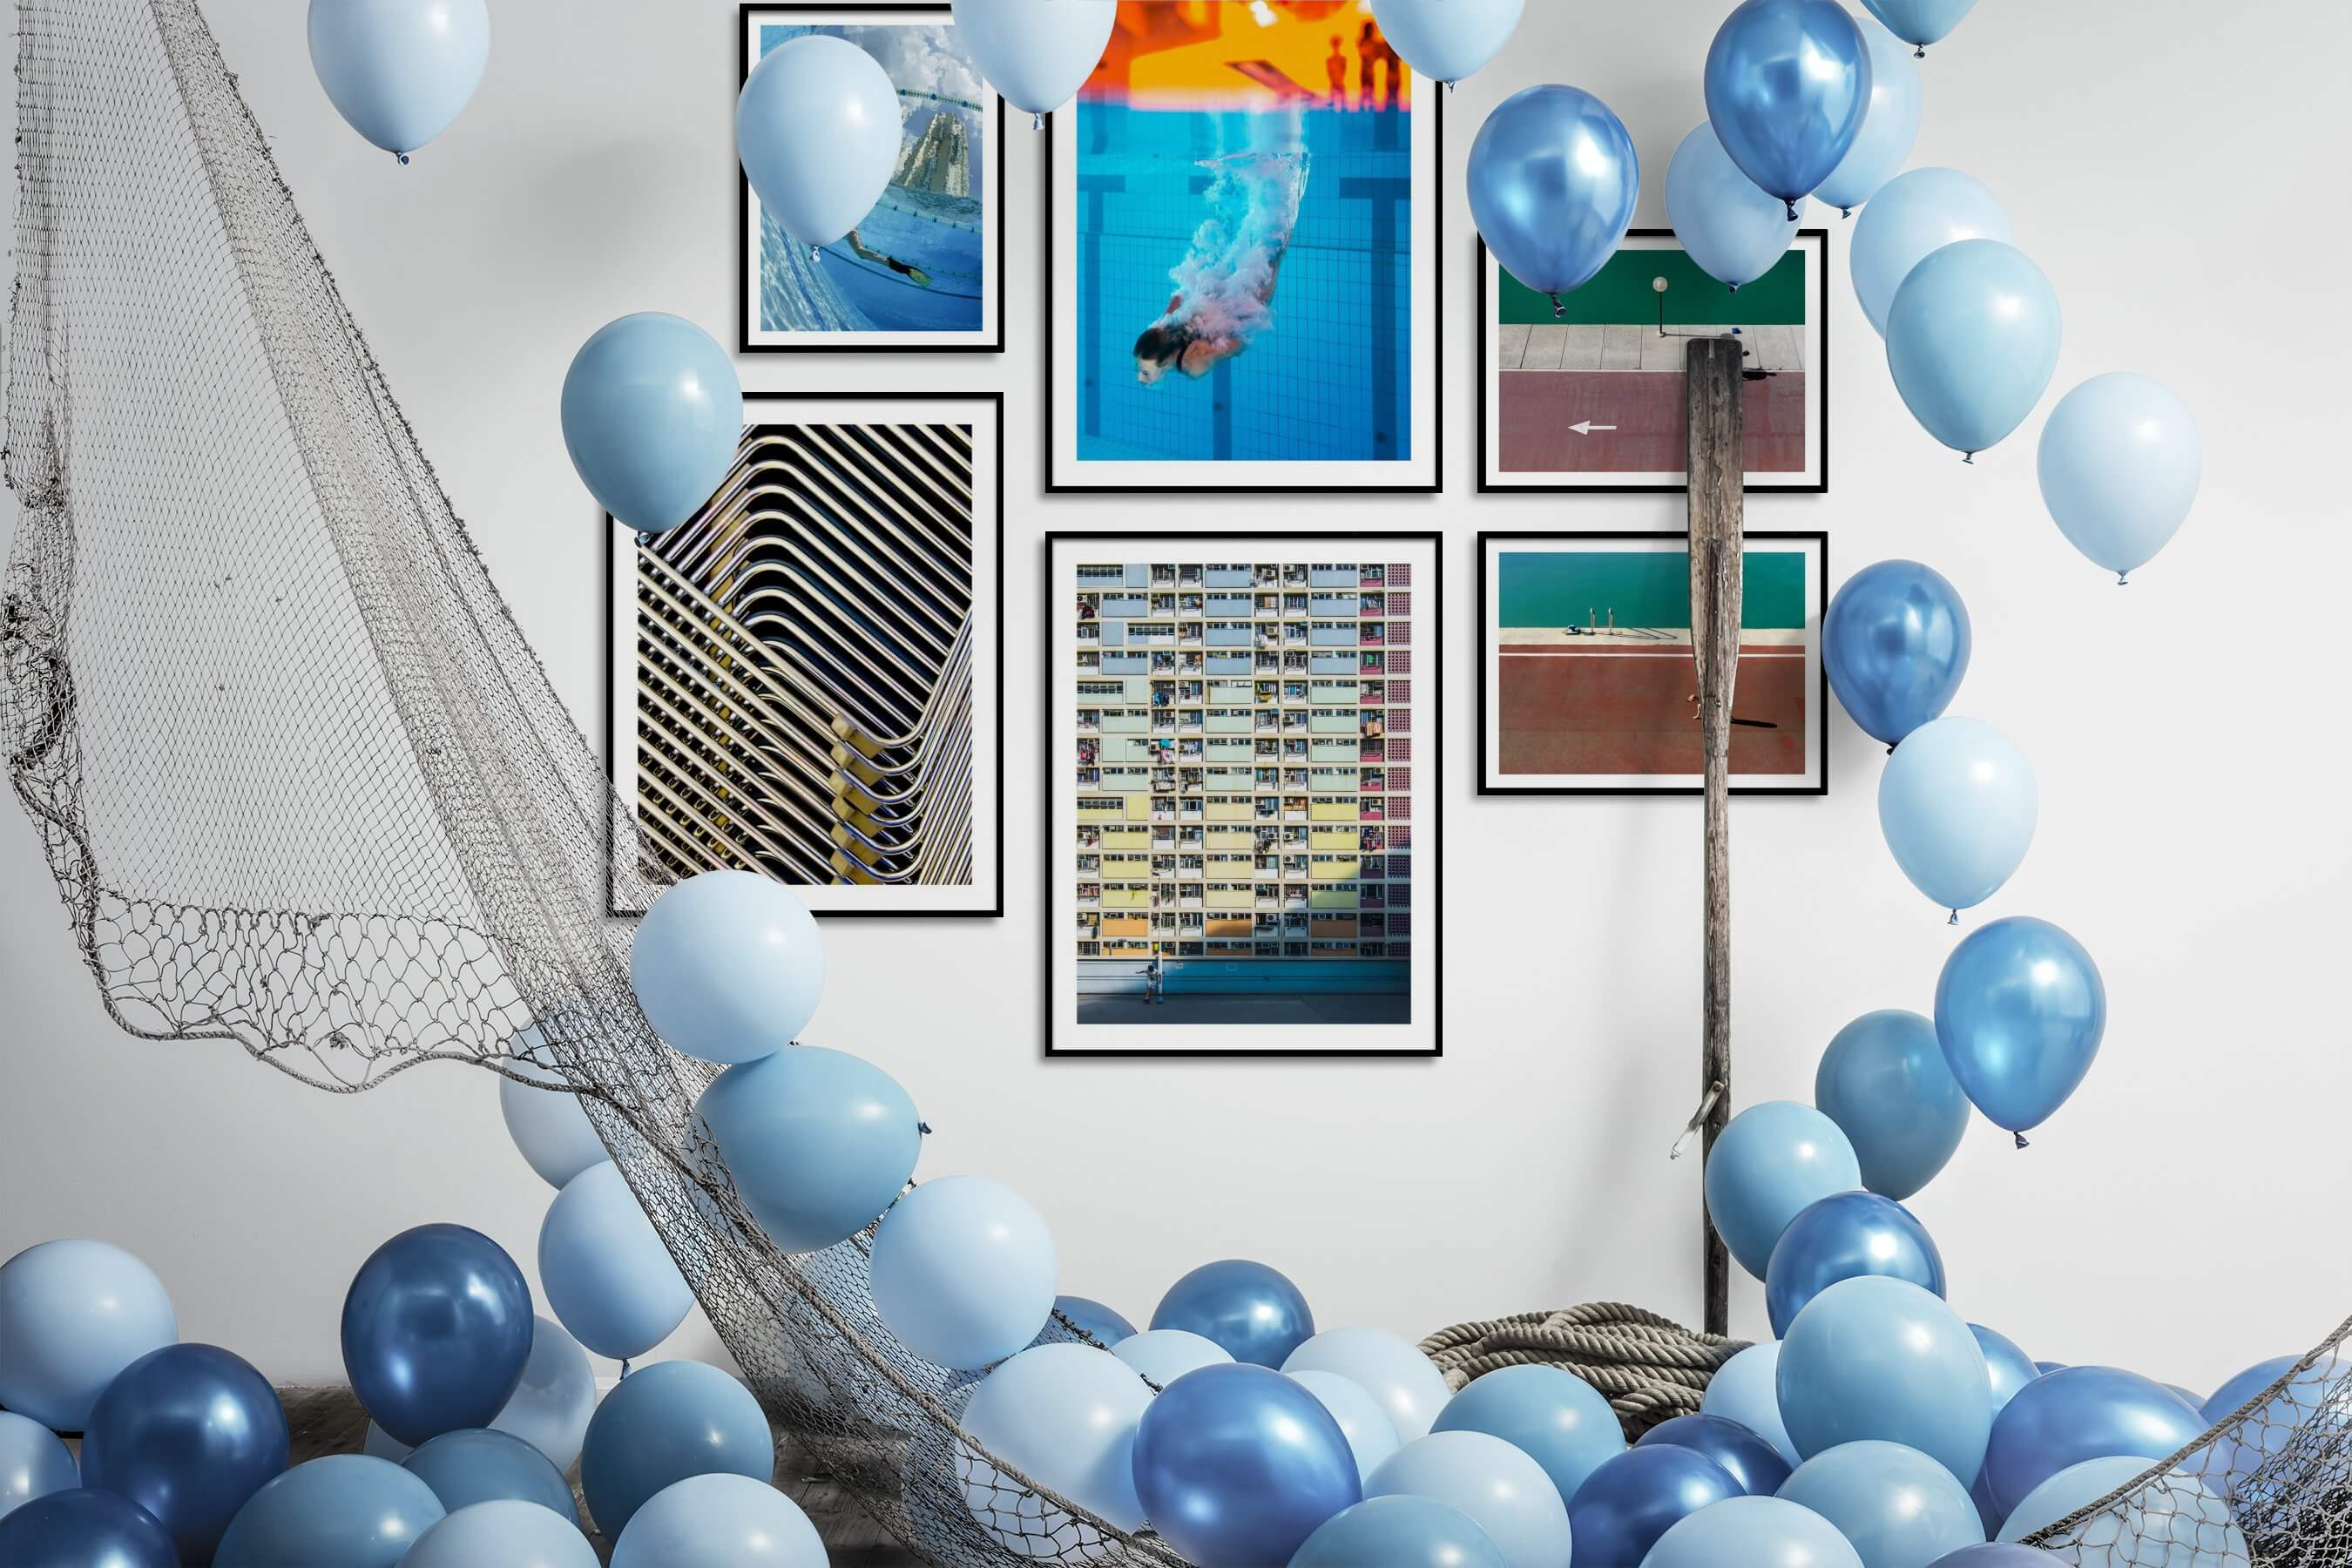 Gallery wall idea with six framed pictures arranged on a wall depicting Beach & Water, For the Maximalist, City Life, For the Moderate, Vintage, and Animals